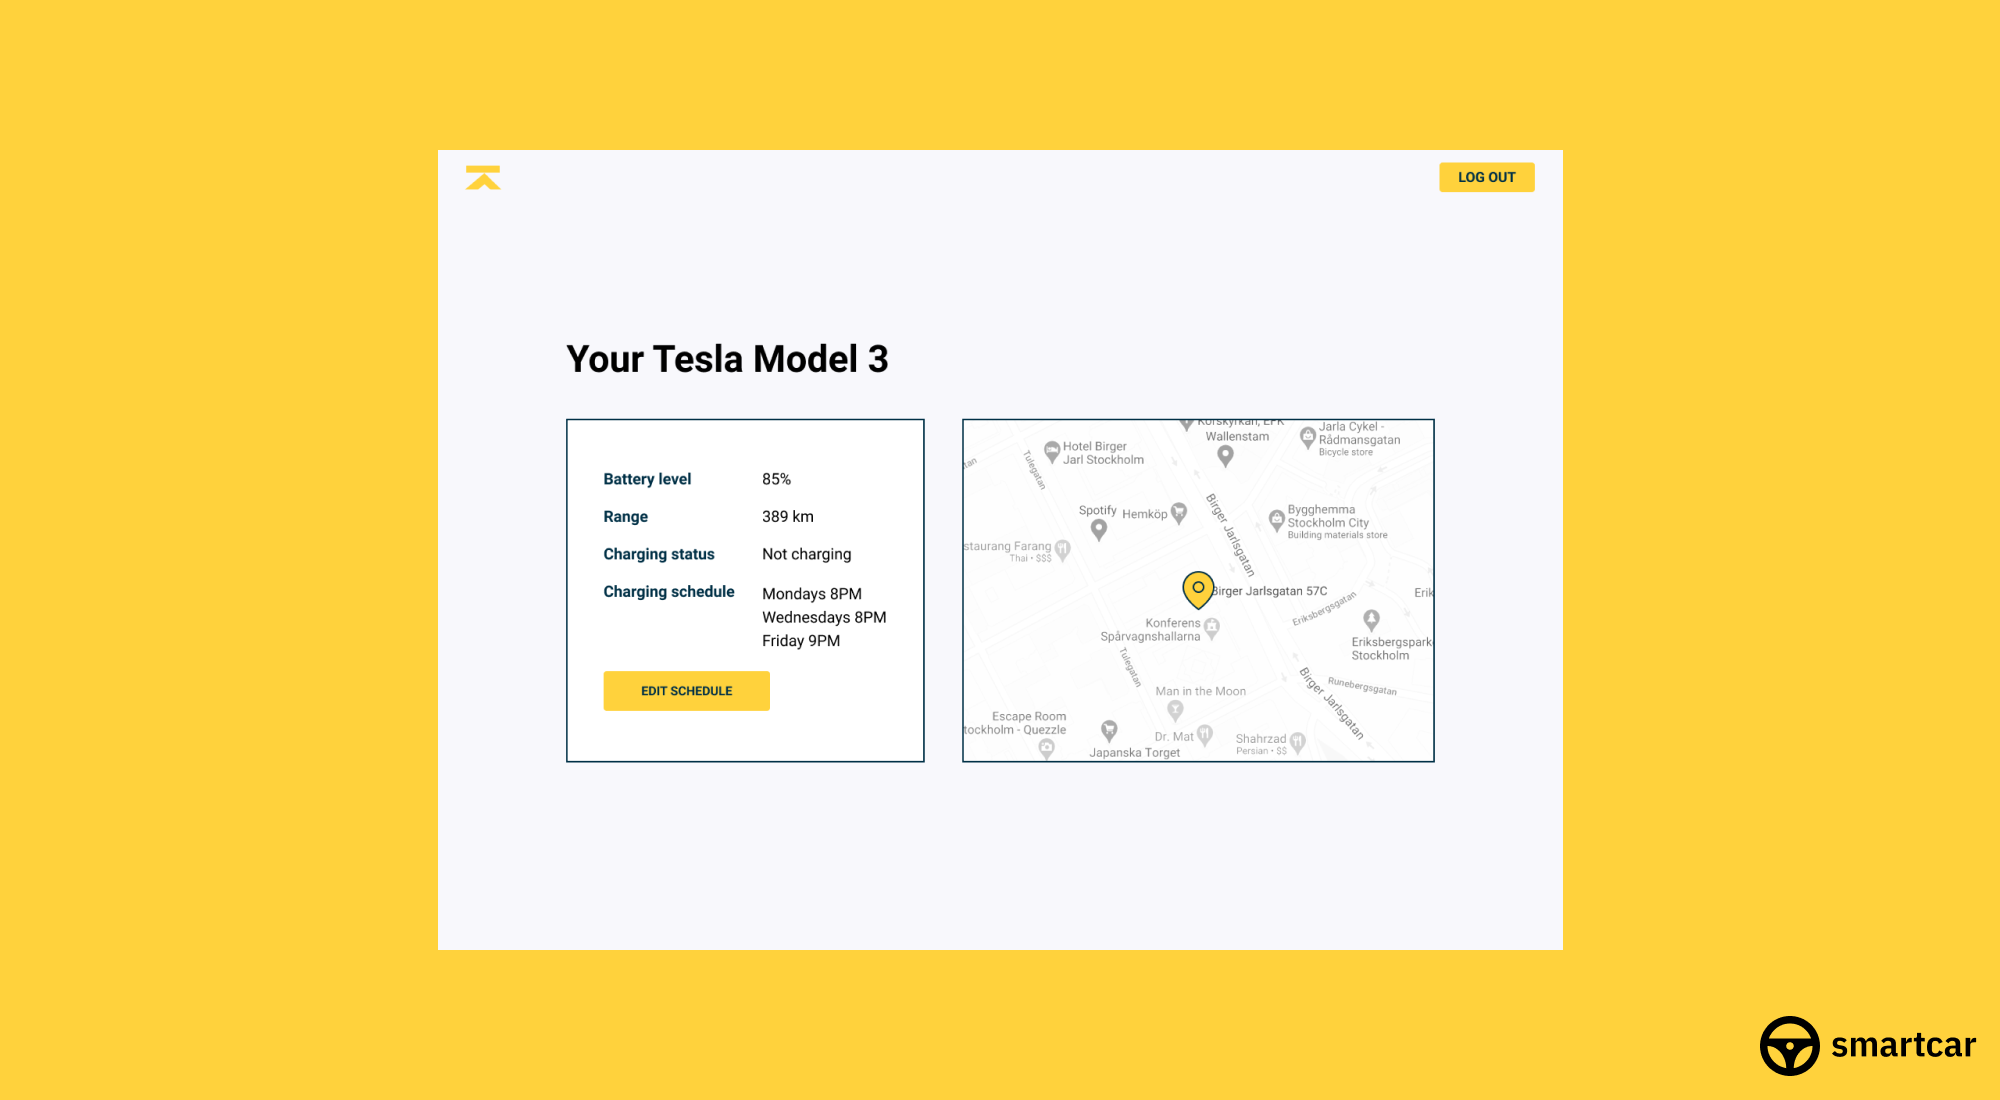 Browser window showing Krafthem web app: map with pinpointed location, battery level, range, charging status, and charging schedule of the customer's Tesla Model 3